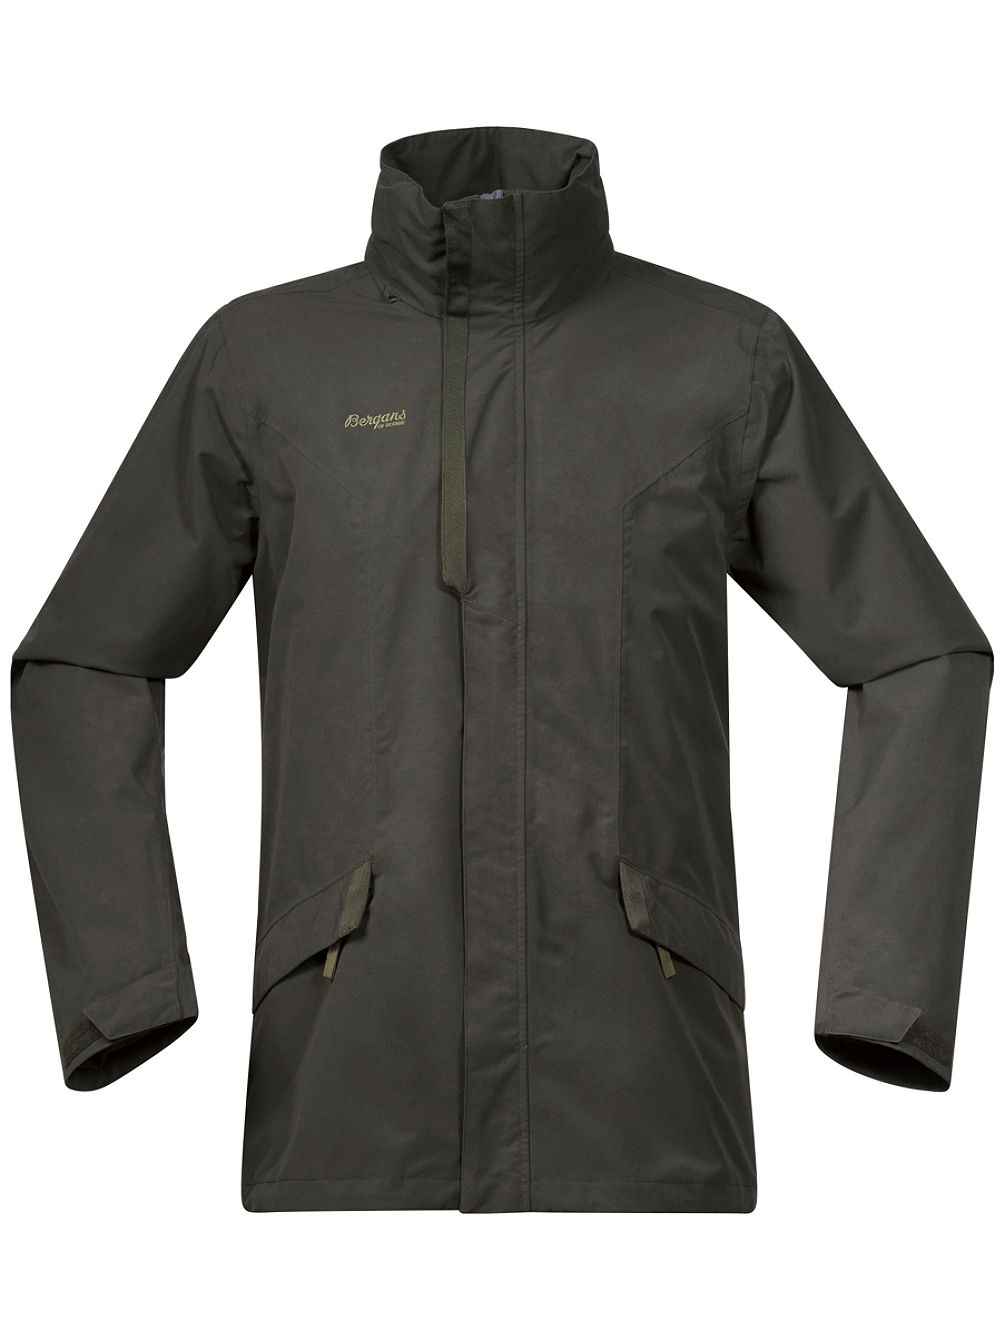 Vollen Outdoor Jacket